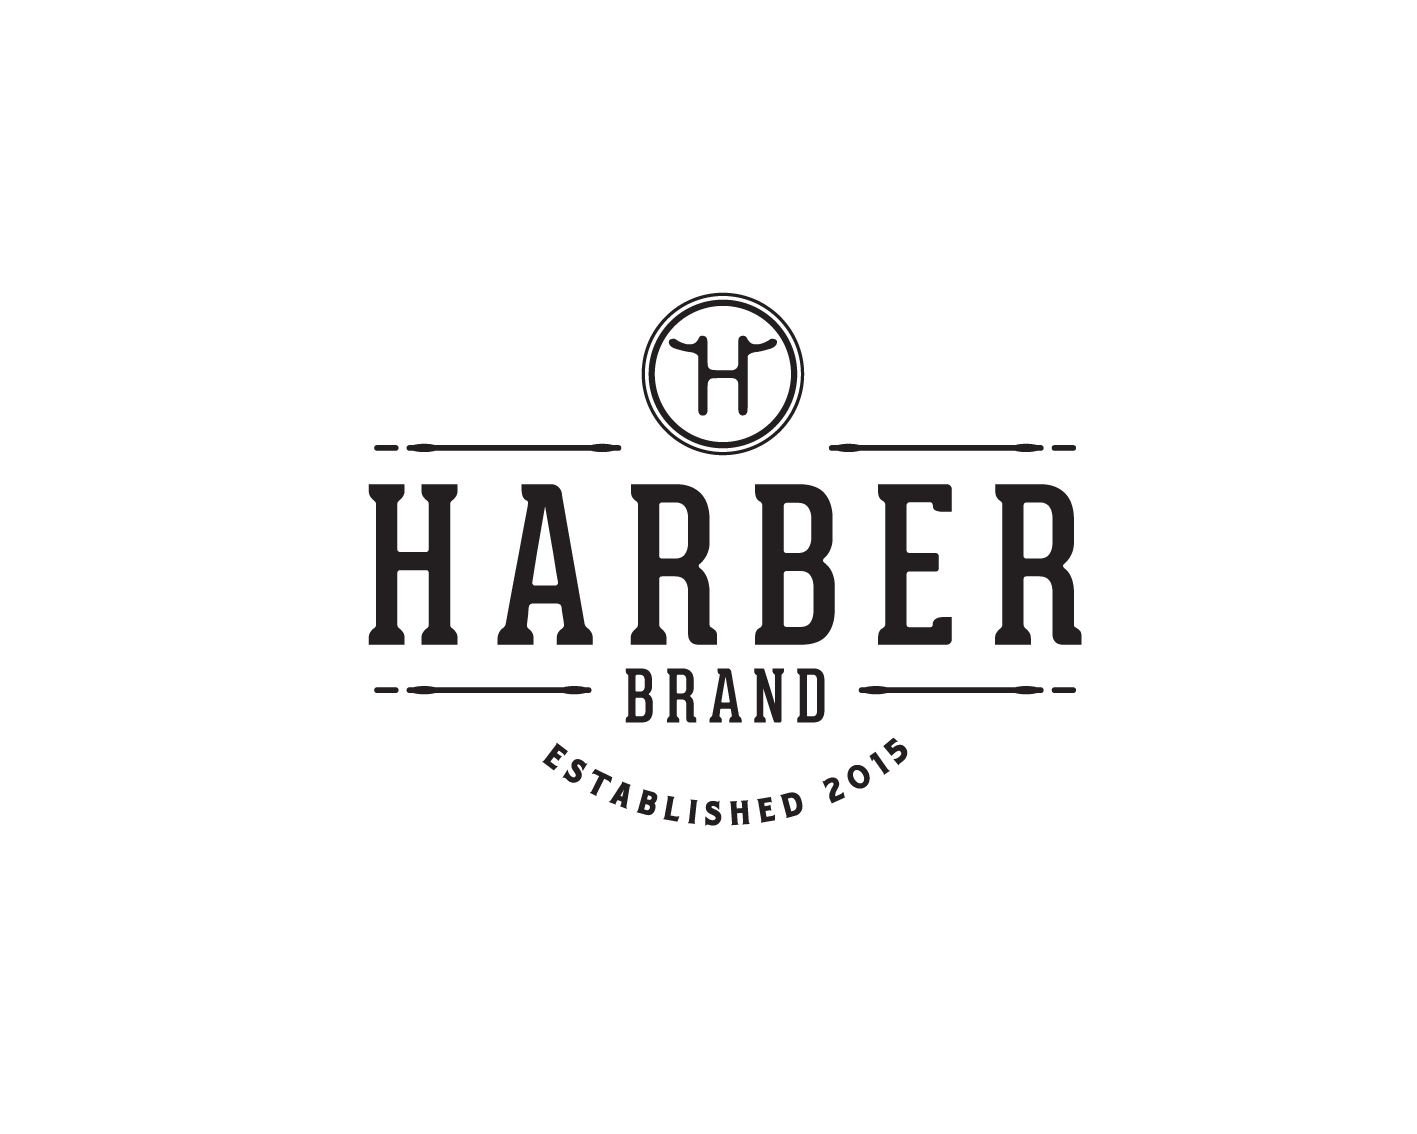 Create a rustic/manly Harber Brand logo